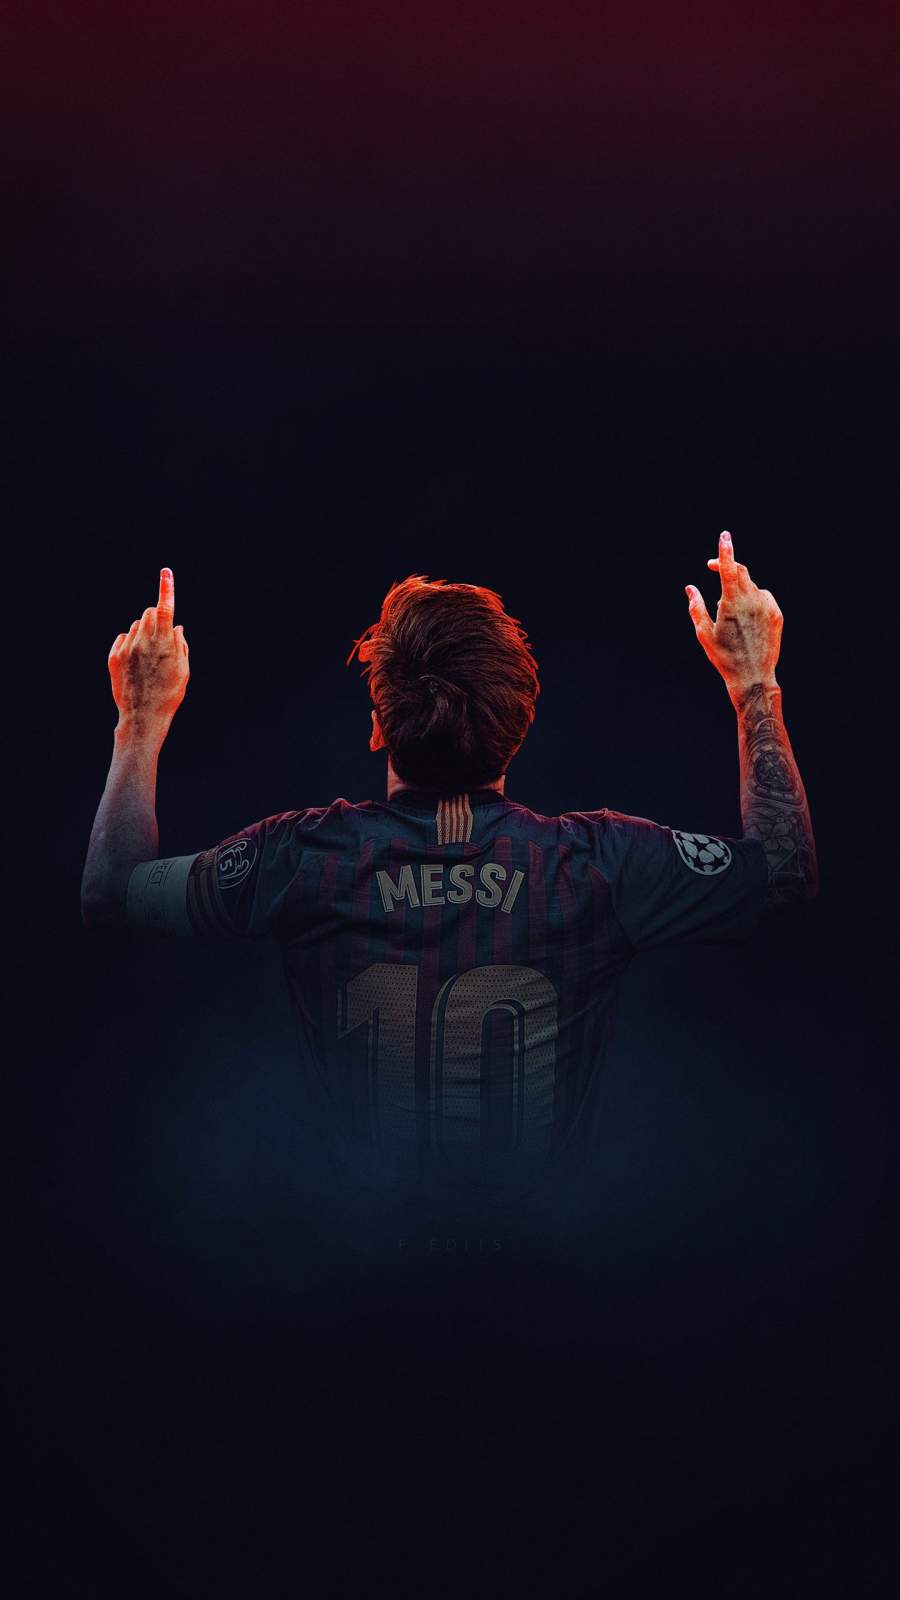 Messi Goal iPhone Wallpaper